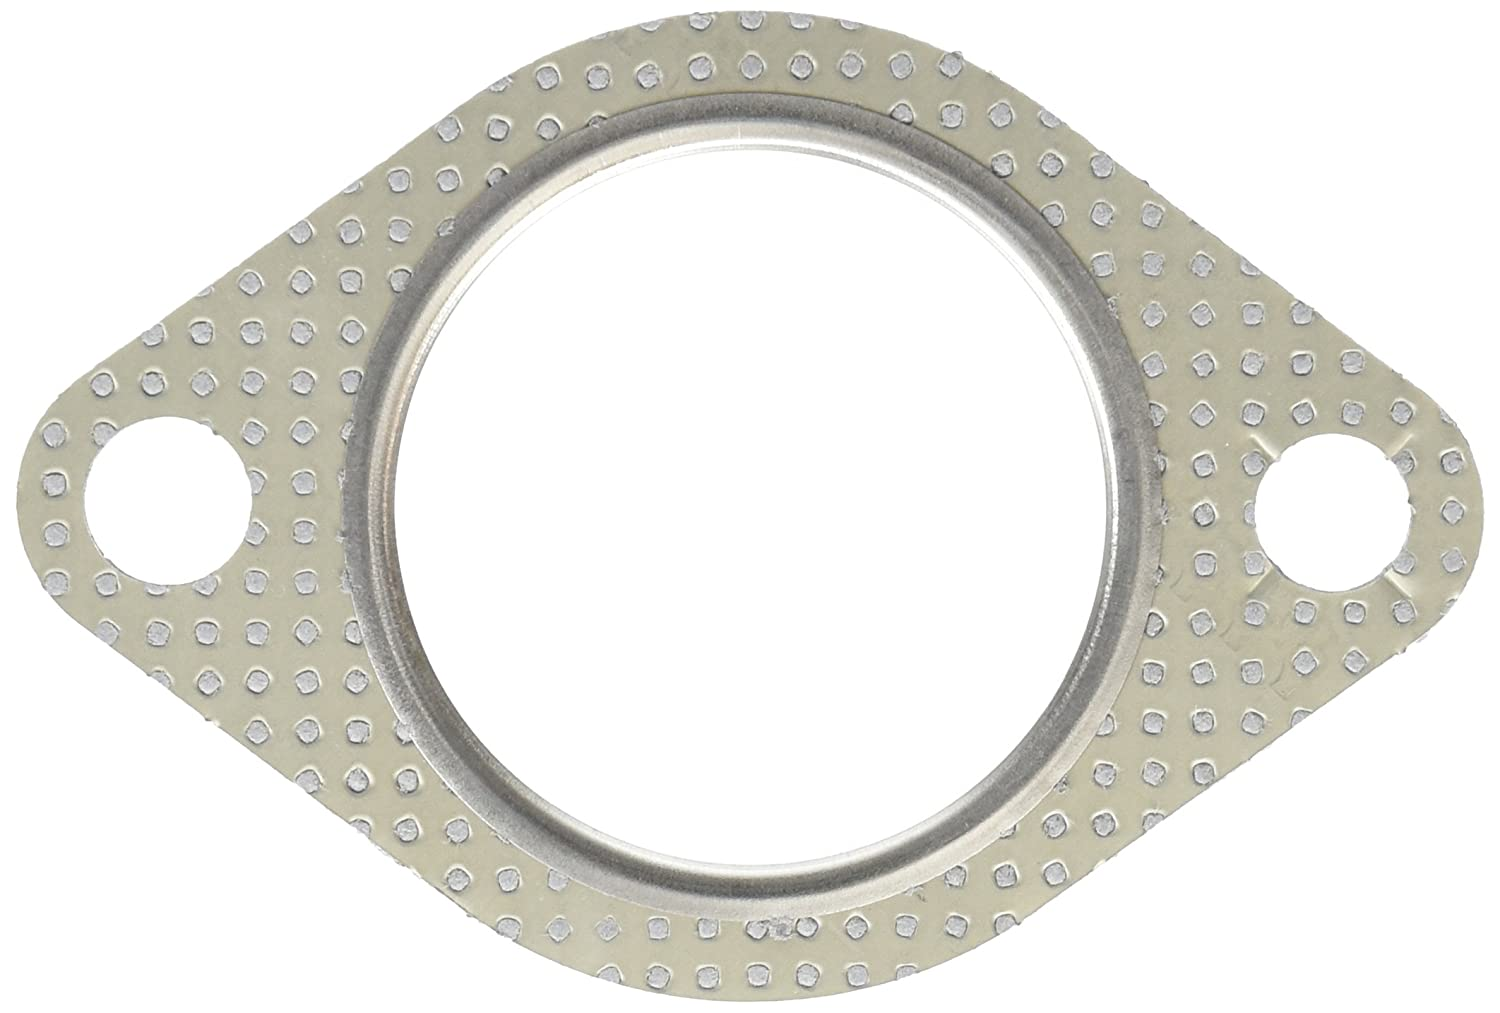 MAHLE Original F12419 Catalytic Converter Gasket MAHLE AFTERMARKET INC. vgF12419.5836